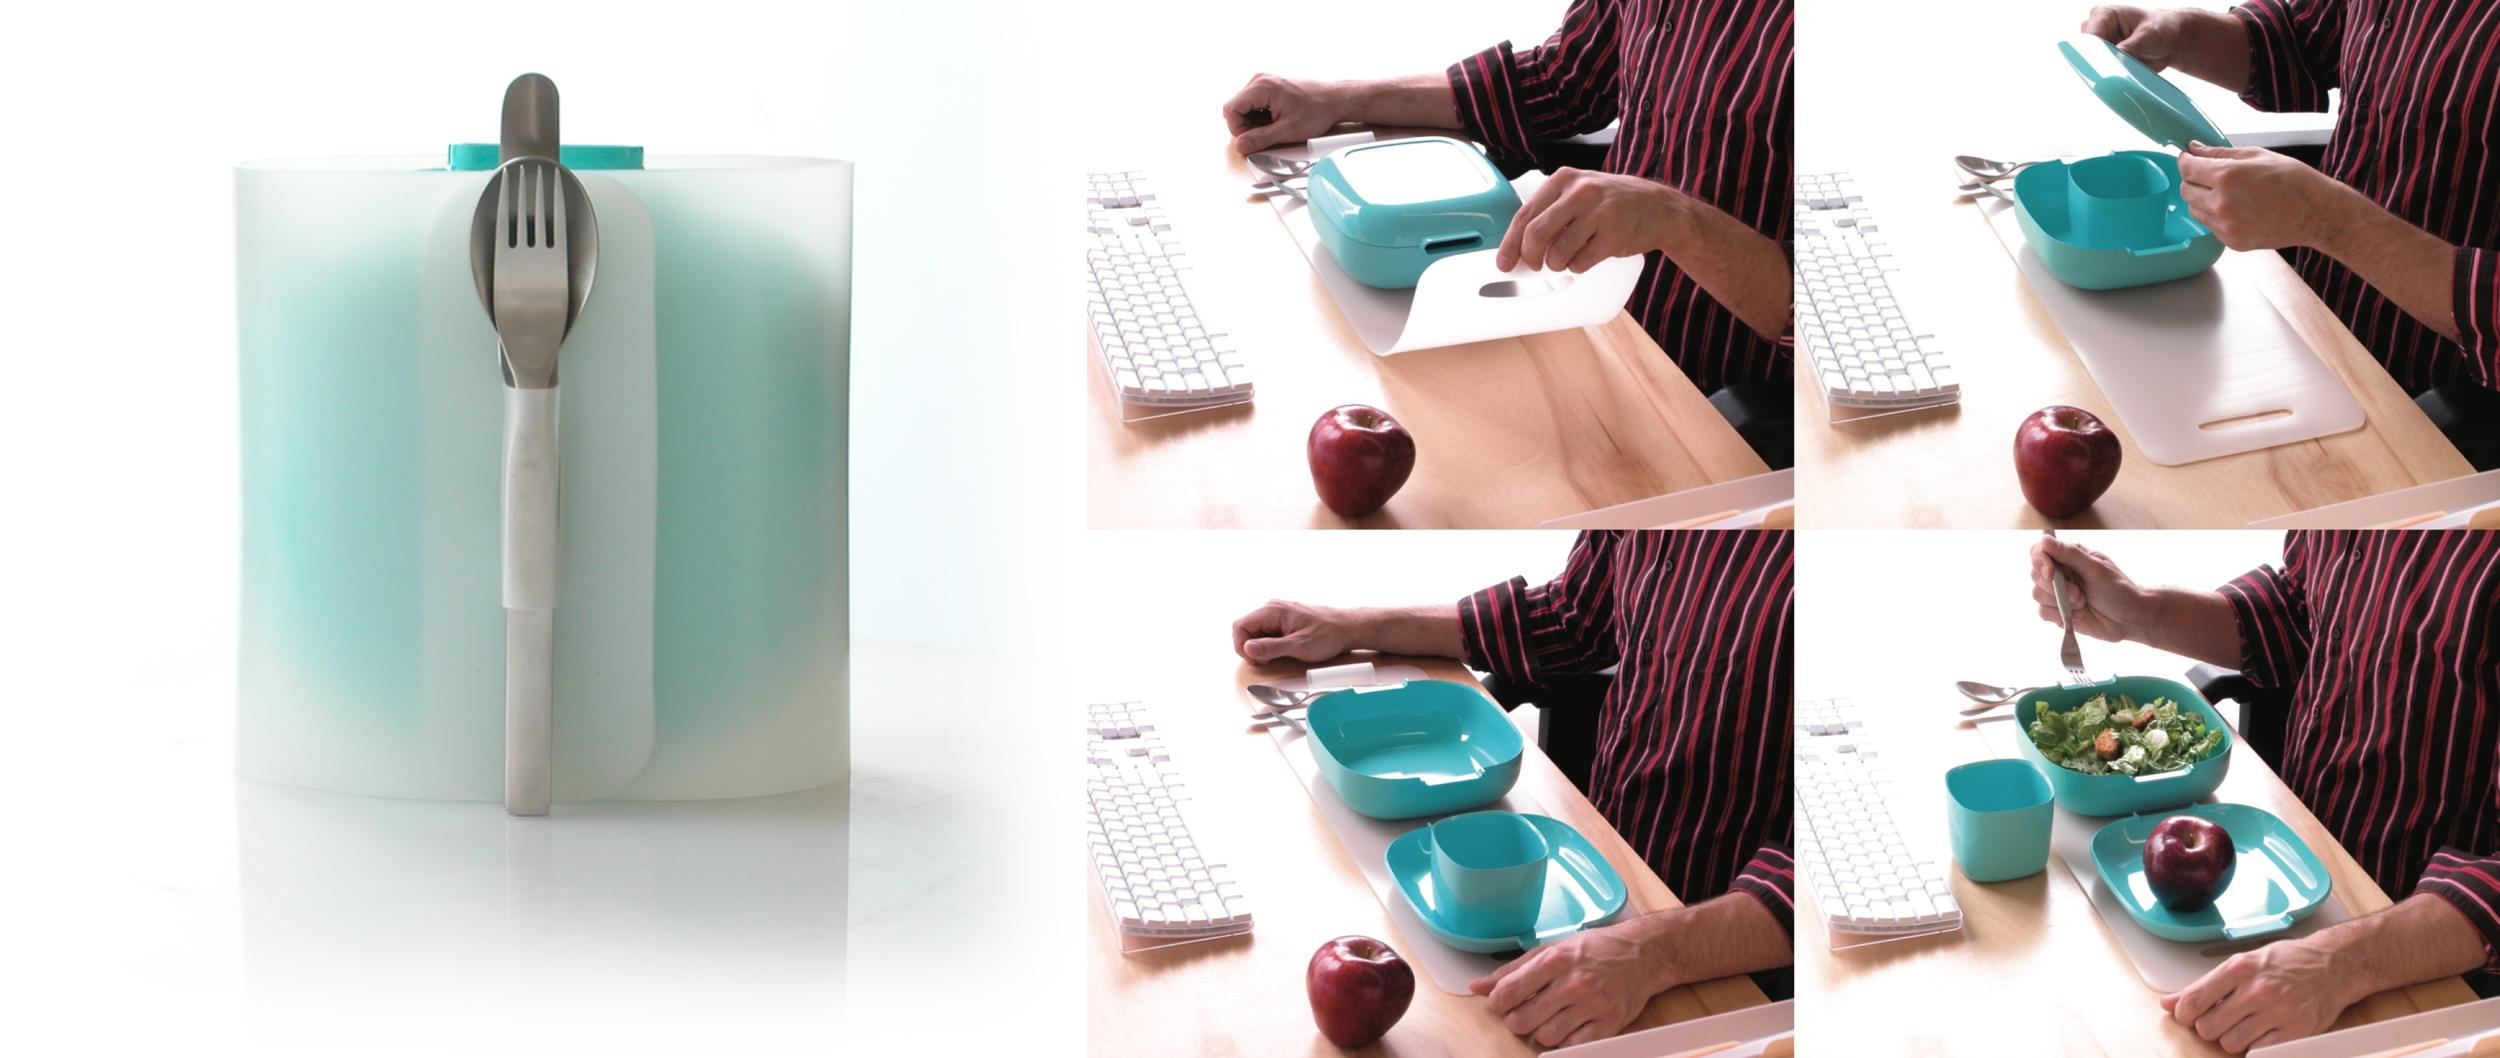 Workplace Dish Set for Vessel Inc. by Y Studios